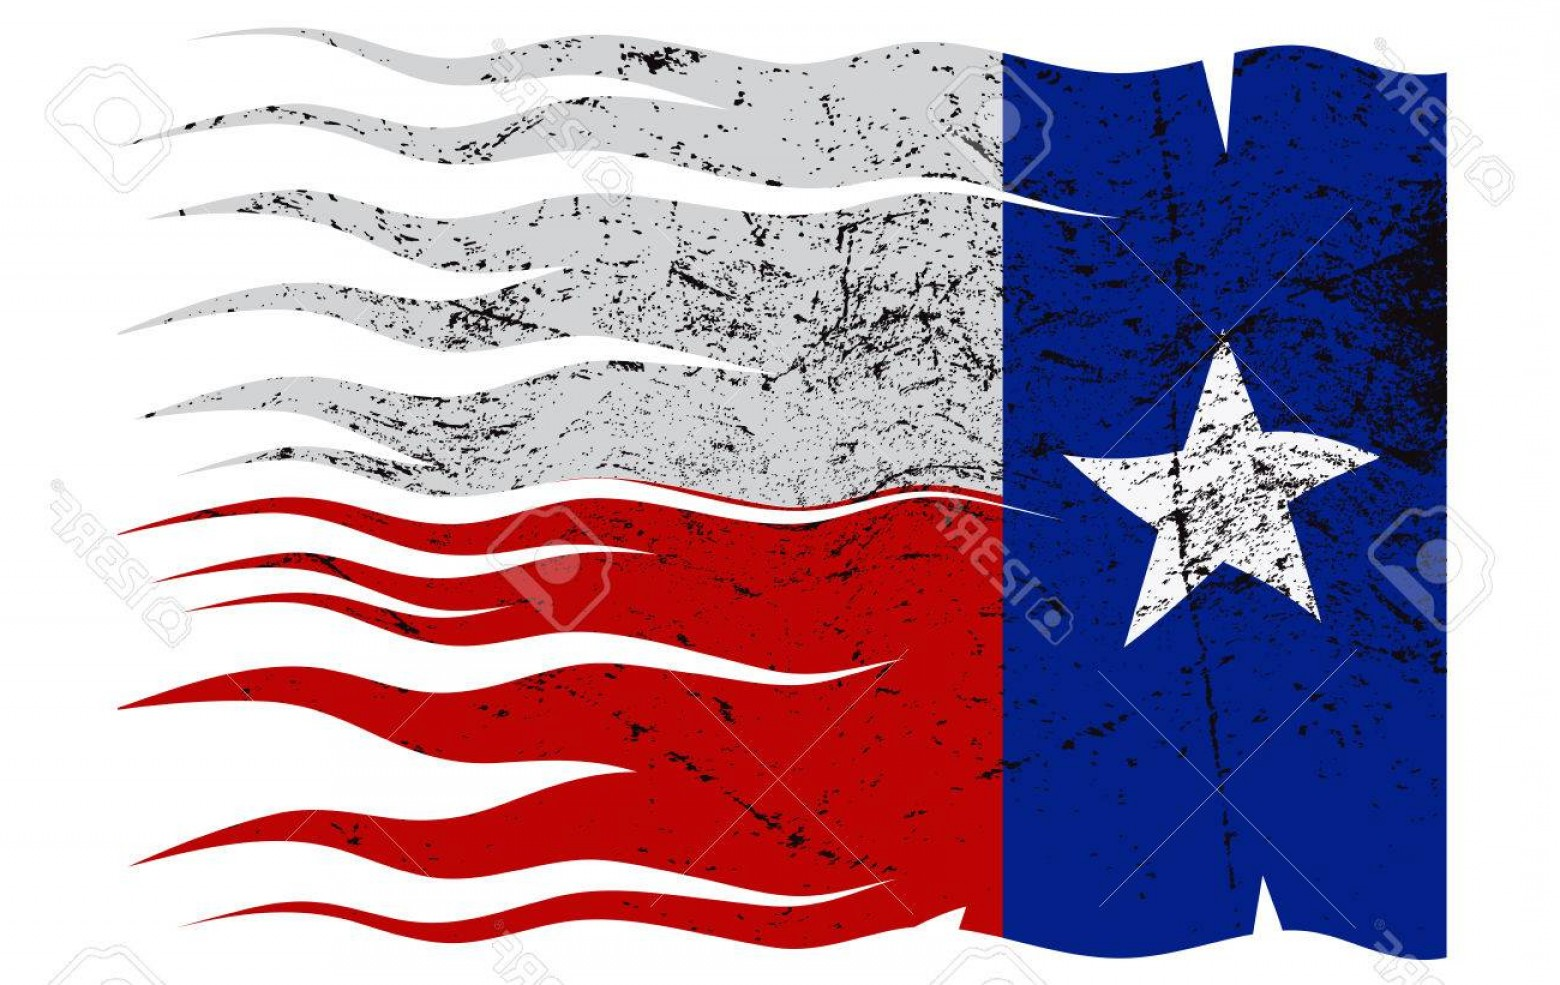 Texas Flag Vector Art: Photostock Vector A Texas Flag Design Isolated On A White Background